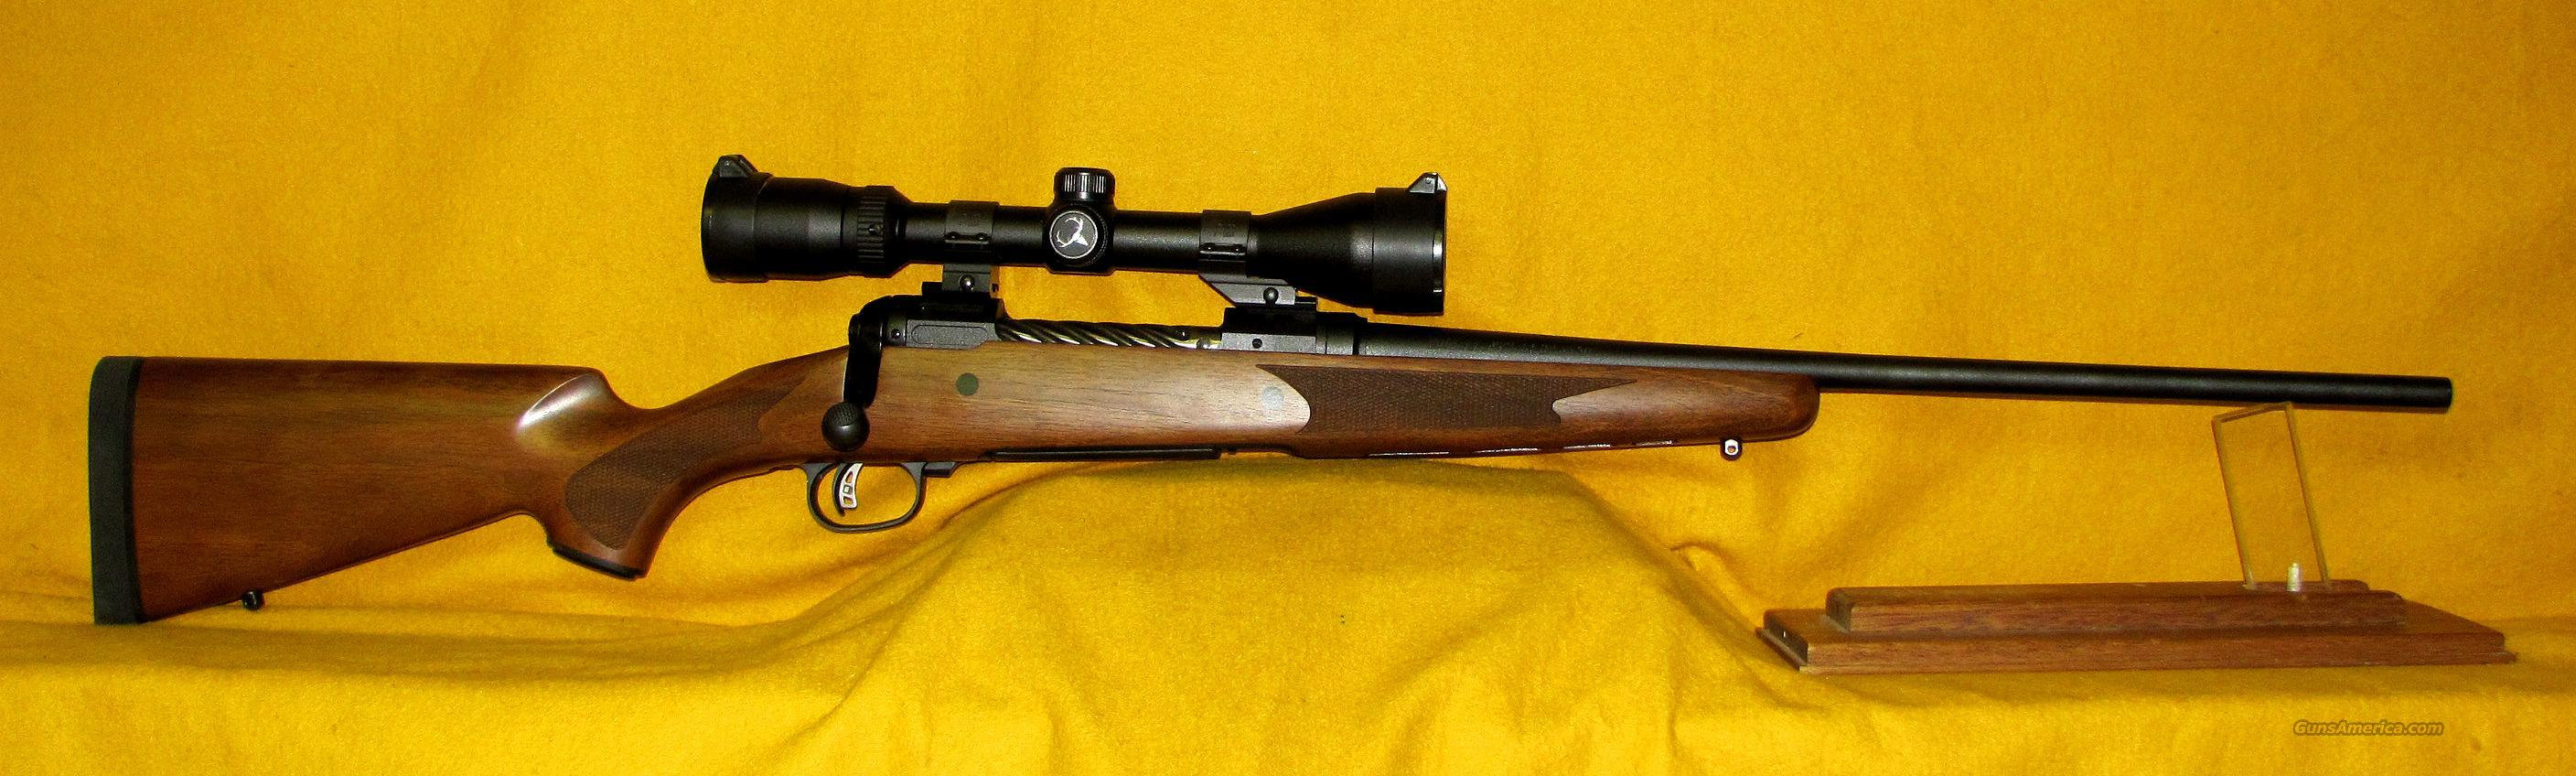 SAVAGE 111 (LIGHT WEIGHT)  Guns > Rifles > Savage Rifles > Accutrigger Models > Sporting